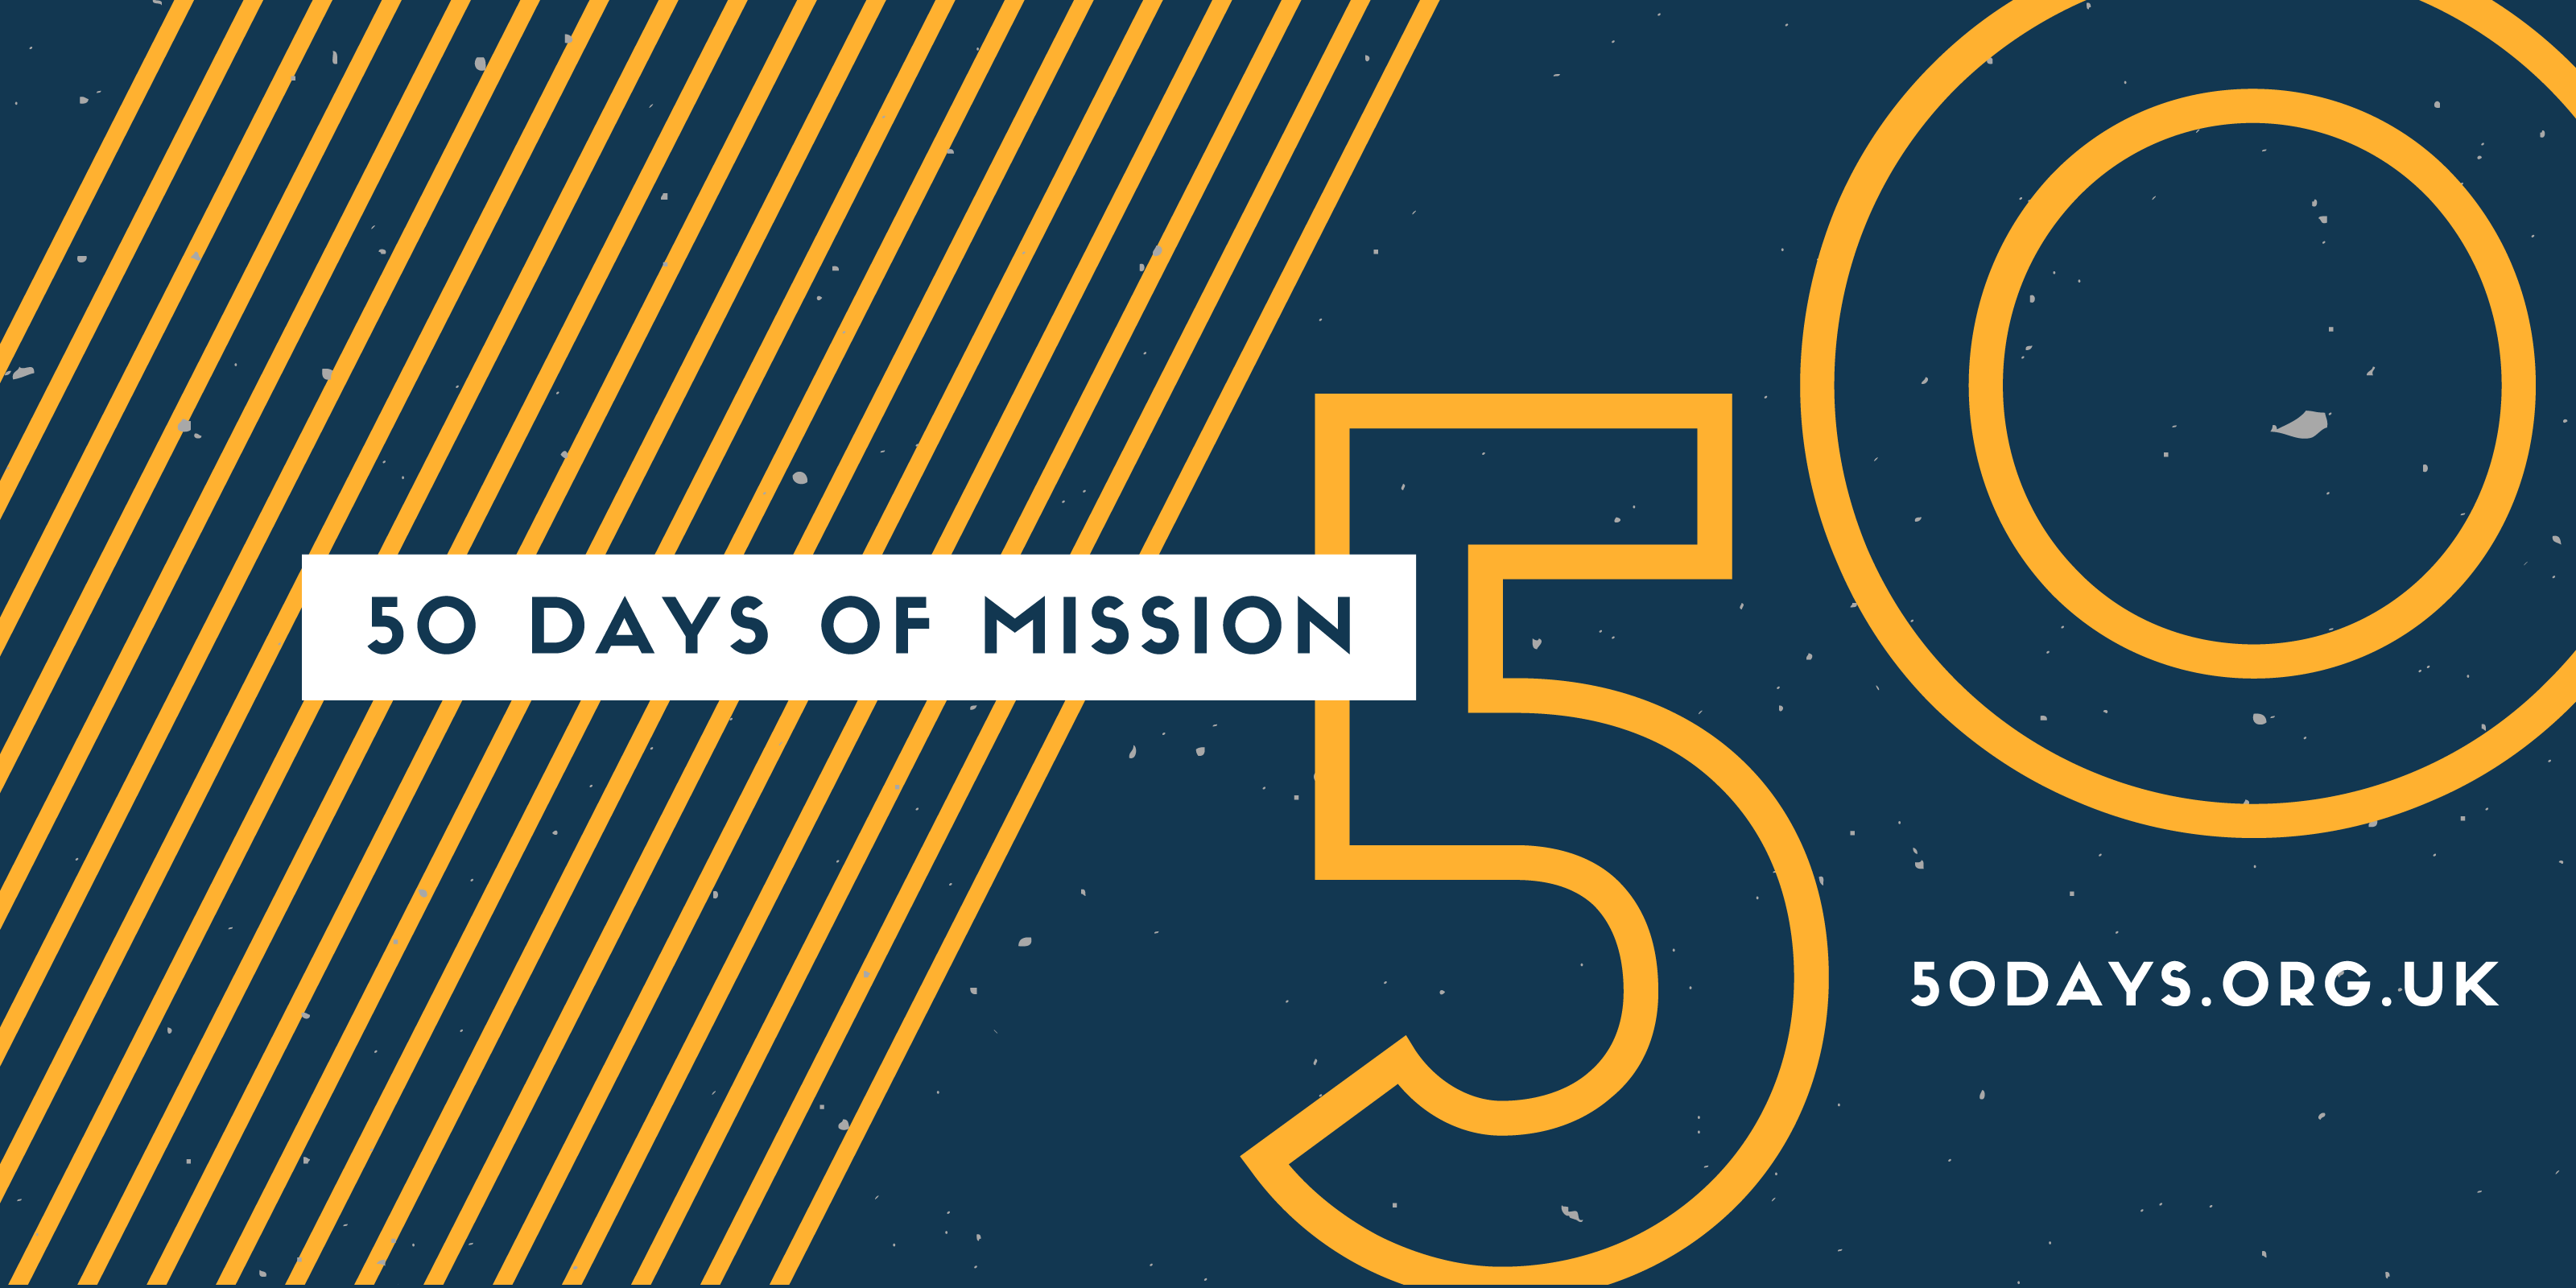 50 Days of Mission